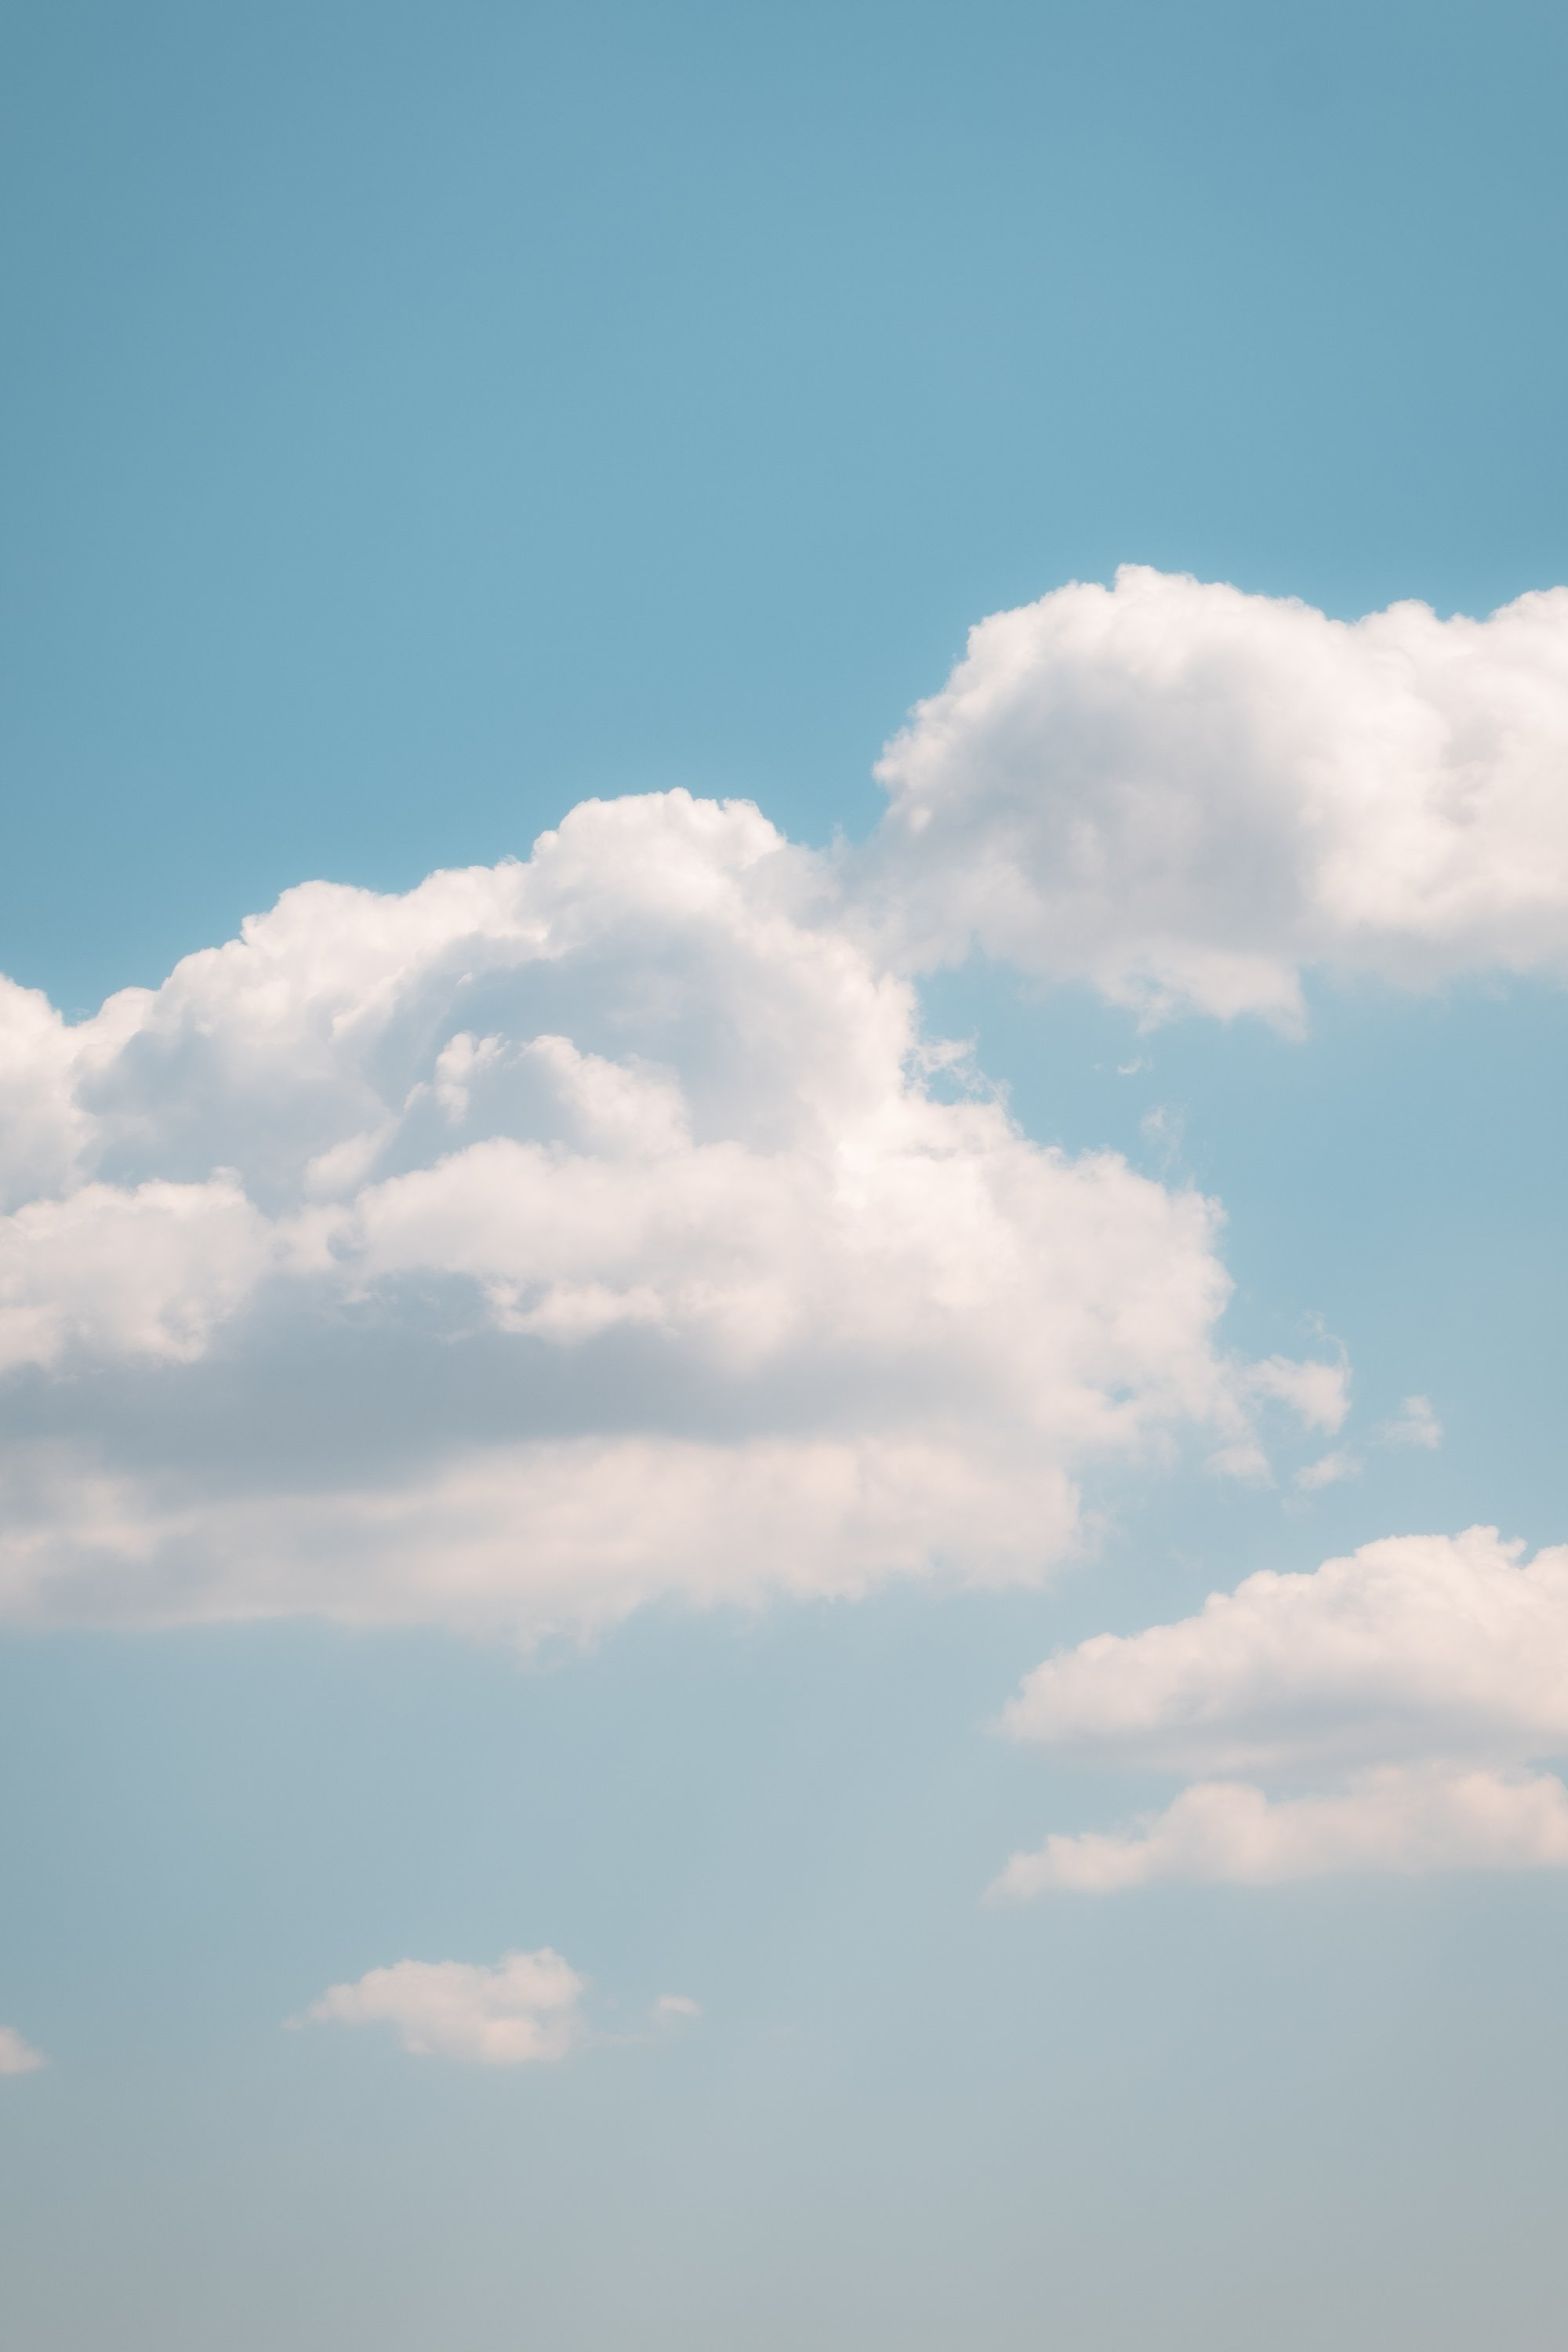 white clouds in a soft blue sky on warm summer day 夏日温暖的蓝天白云